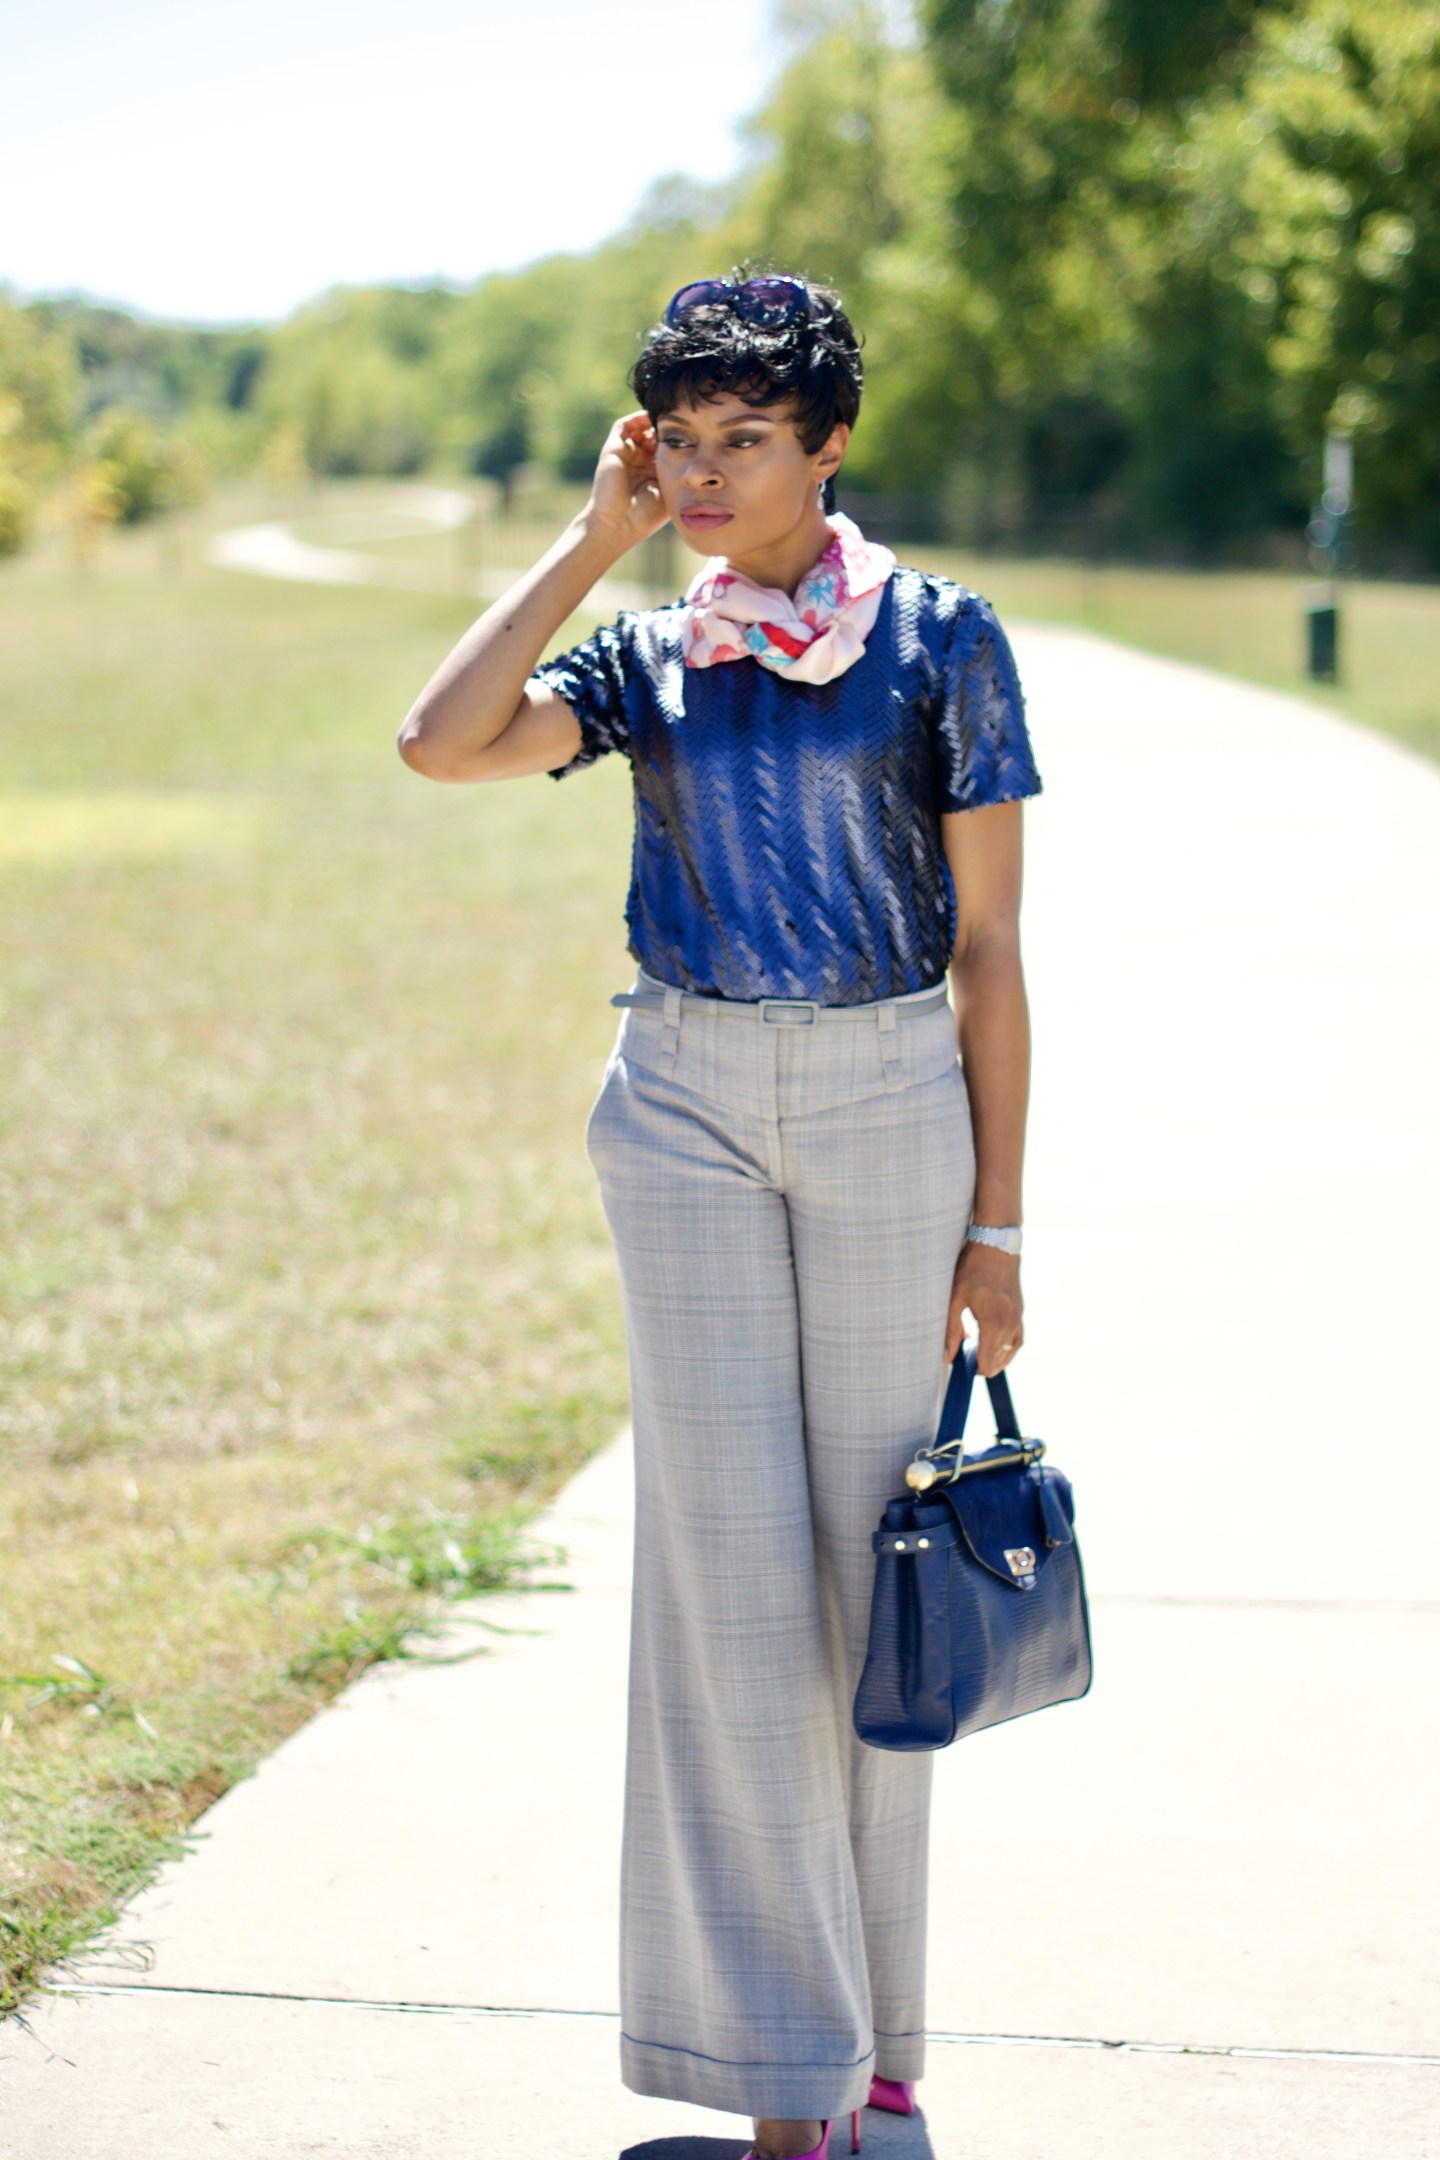 Style sequins as work wear (like a Pro) Posted by Vivellefashion